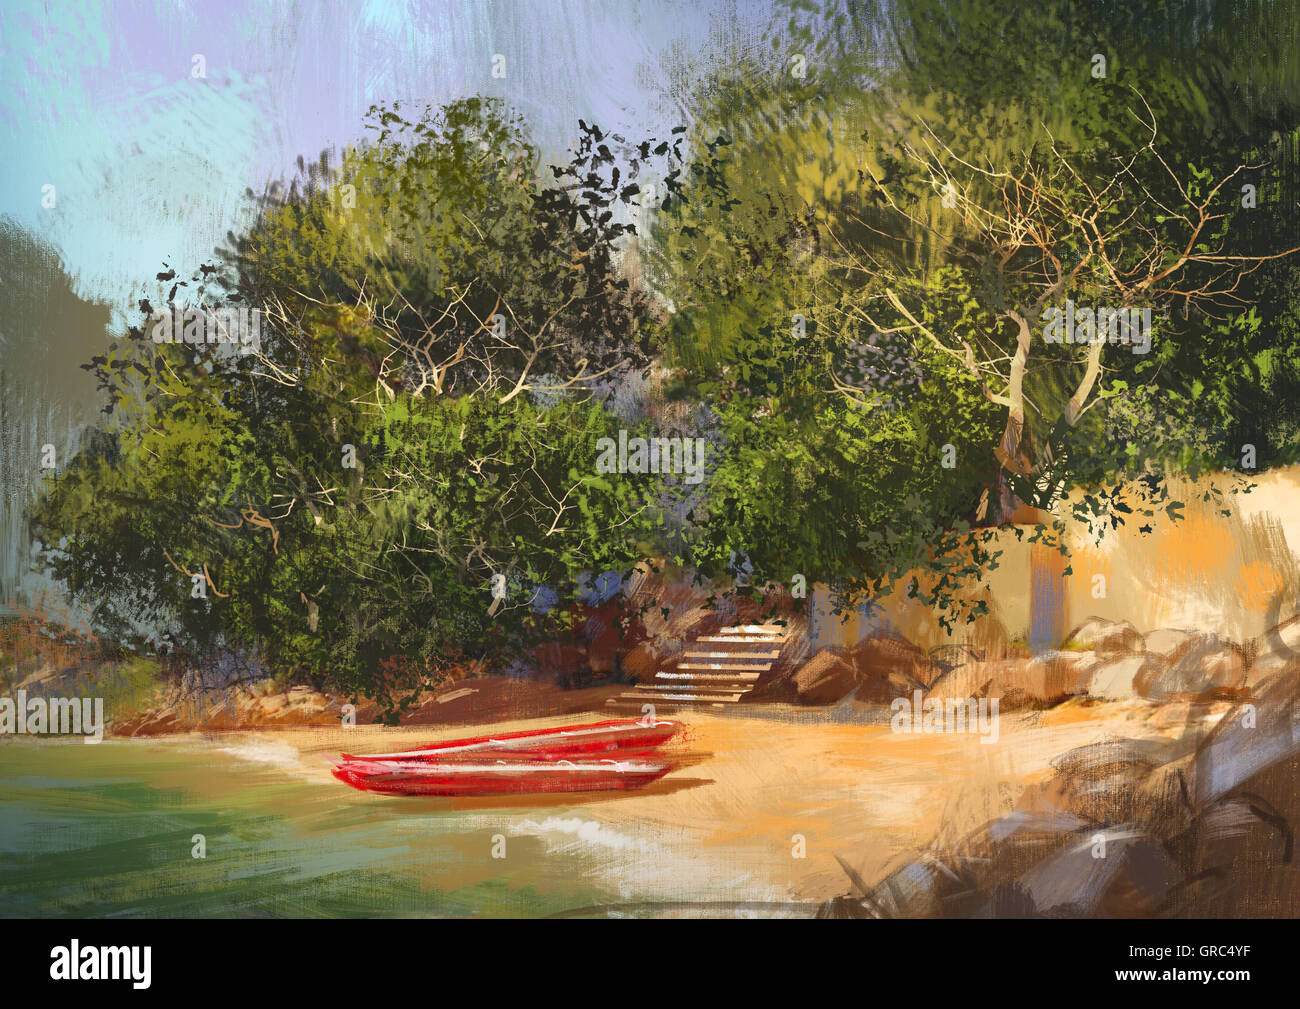 Tropical Landscape Oil Painting High Resolution Stock Photography And Images Alamy